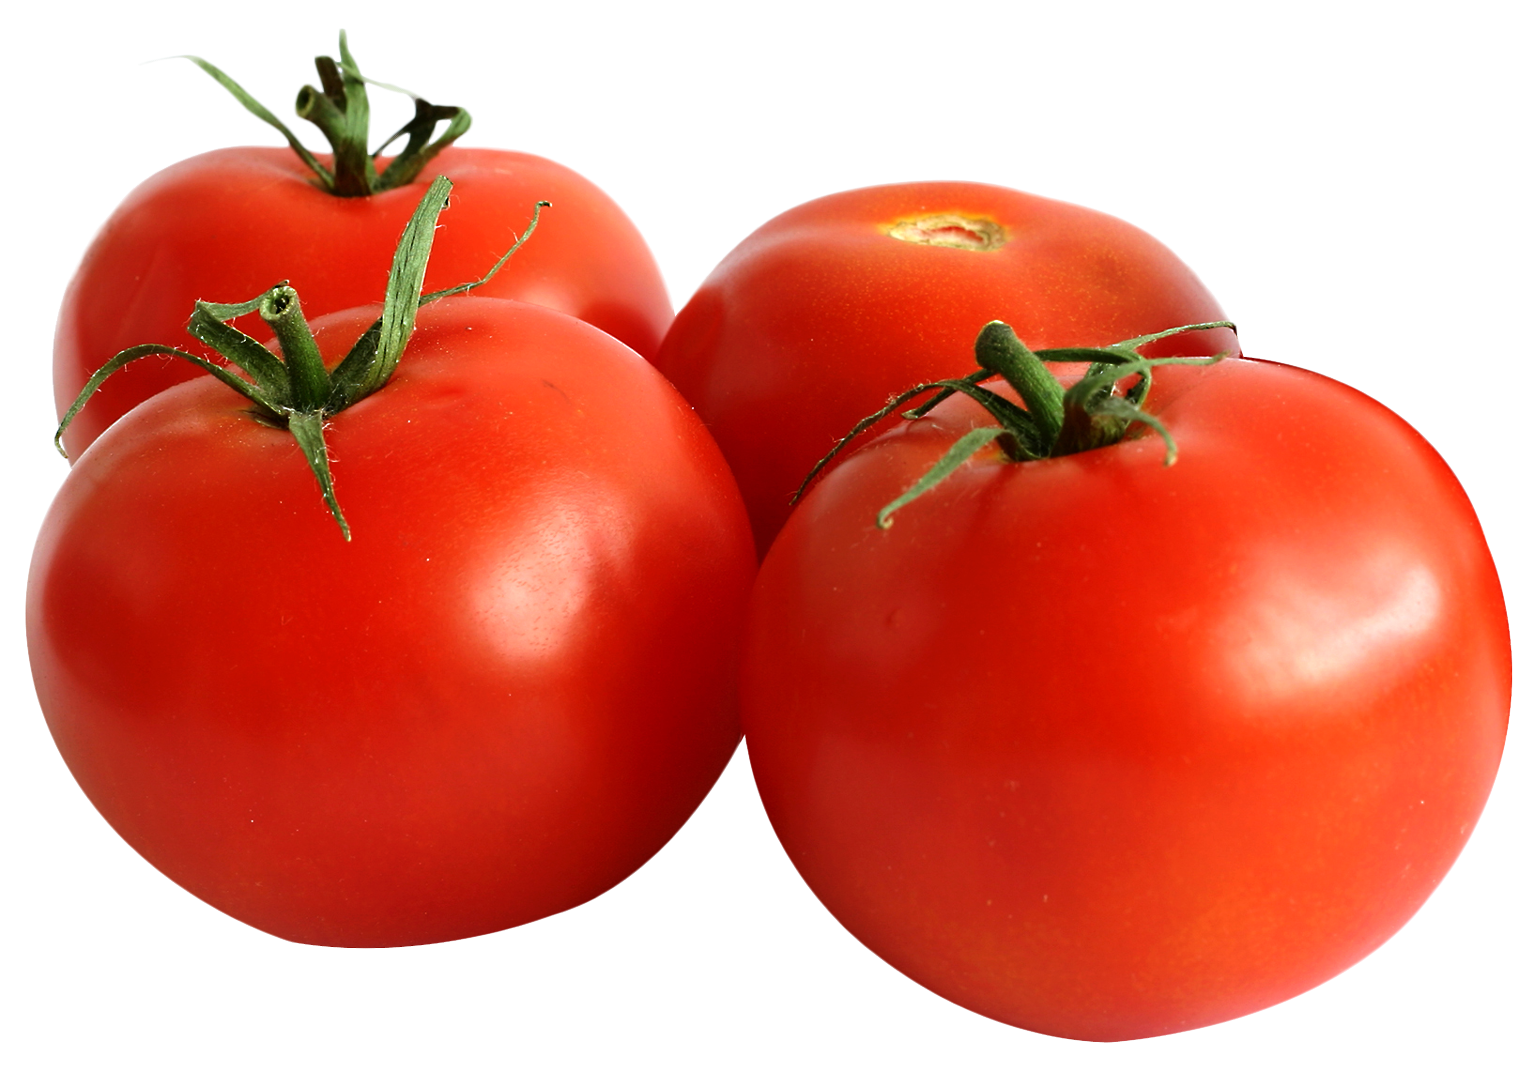 PNG Tomato Transparent Tomato.PNG Images.   PlusPNG  Vector